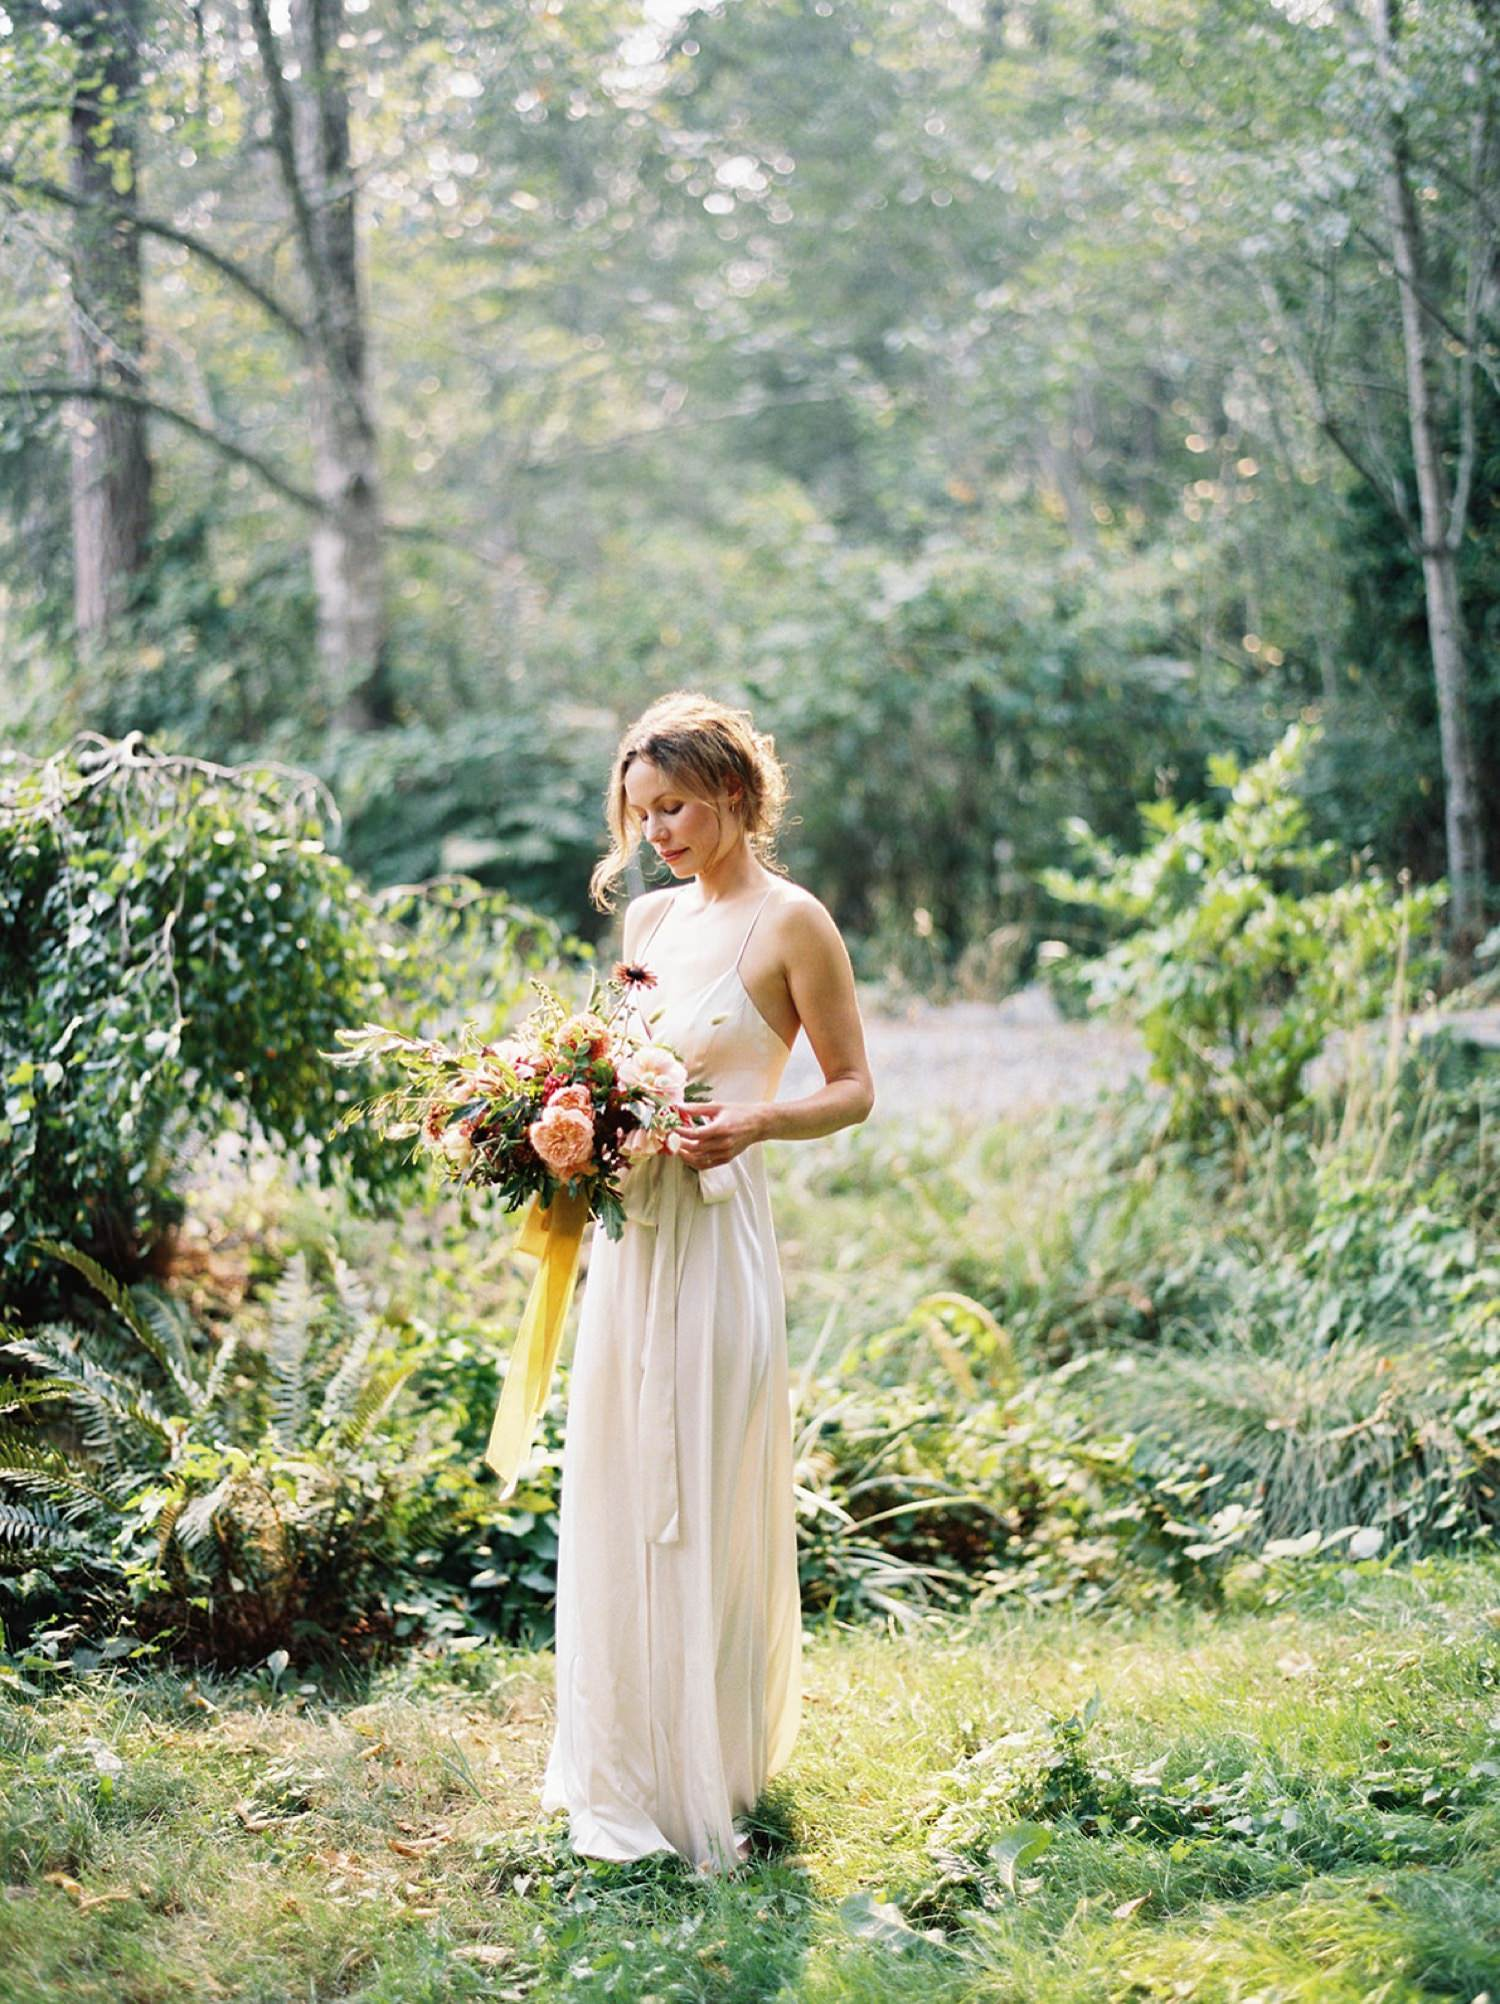 Bride with colorful, garden inspired bouquet at an intimate backyard wedding on Bainbridge Island